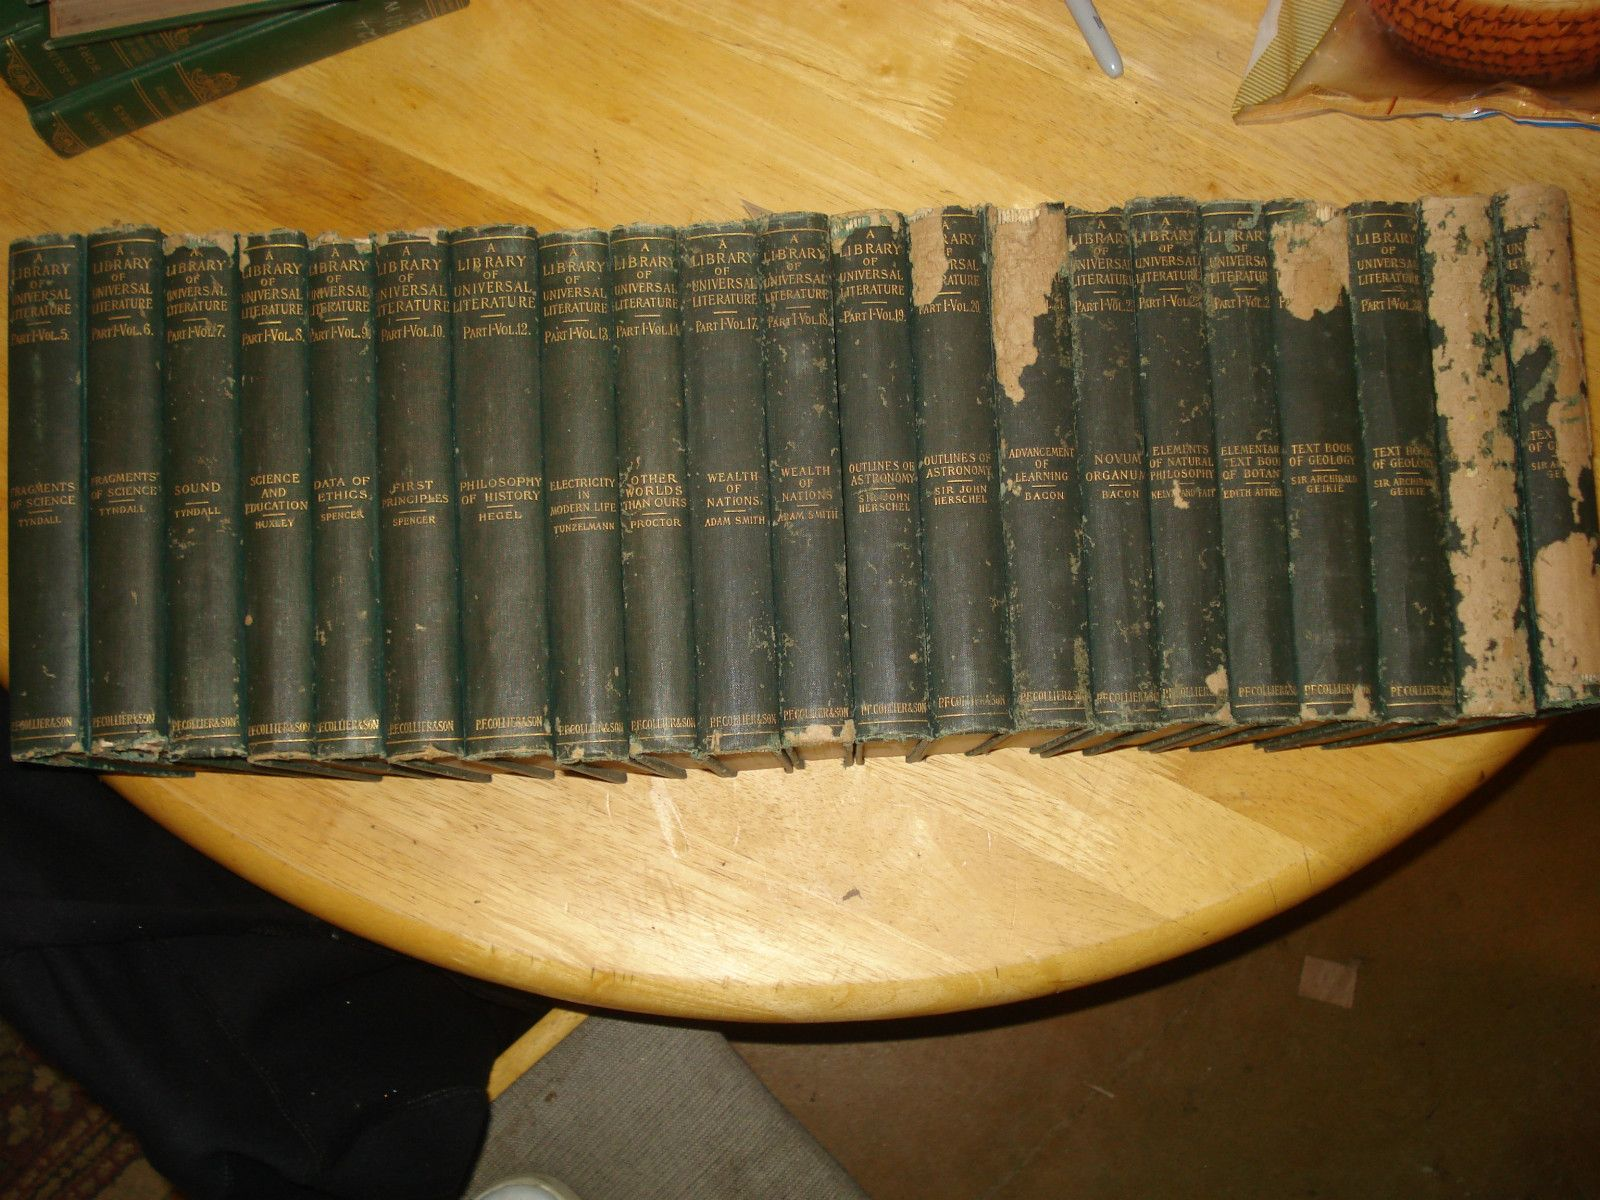 A Library of Universal Literature, 21 volumes 1901